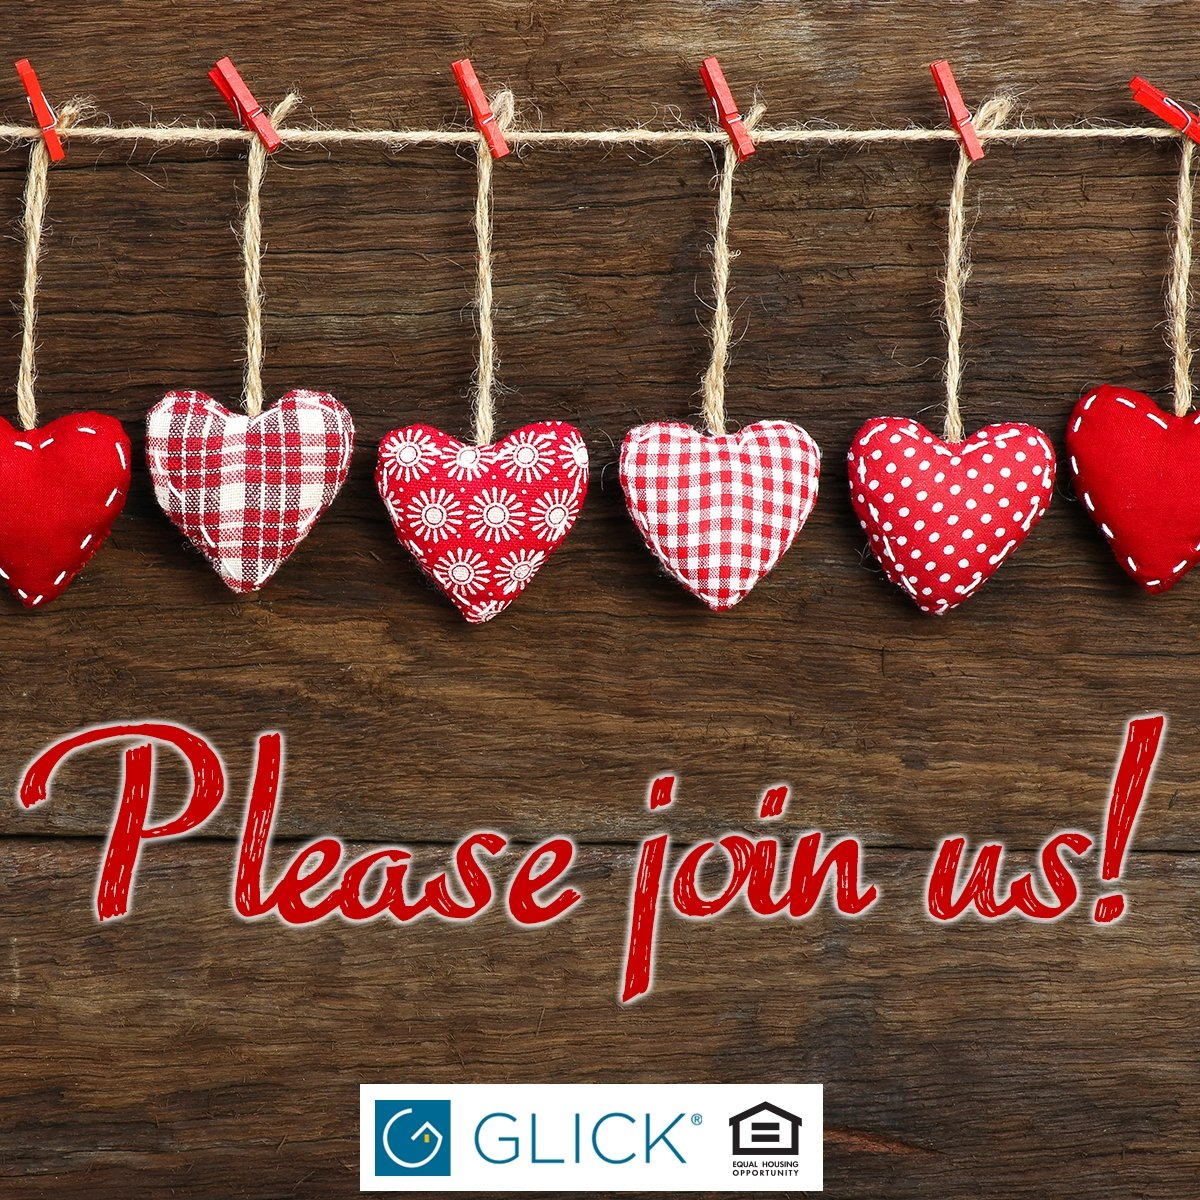 Please Join Us this evening from 4 PM- 5 PM for our Valentine's Day celebration at the Leasing Office! We will have games and goodies for the children and treats for the adults. We hope to see you there!